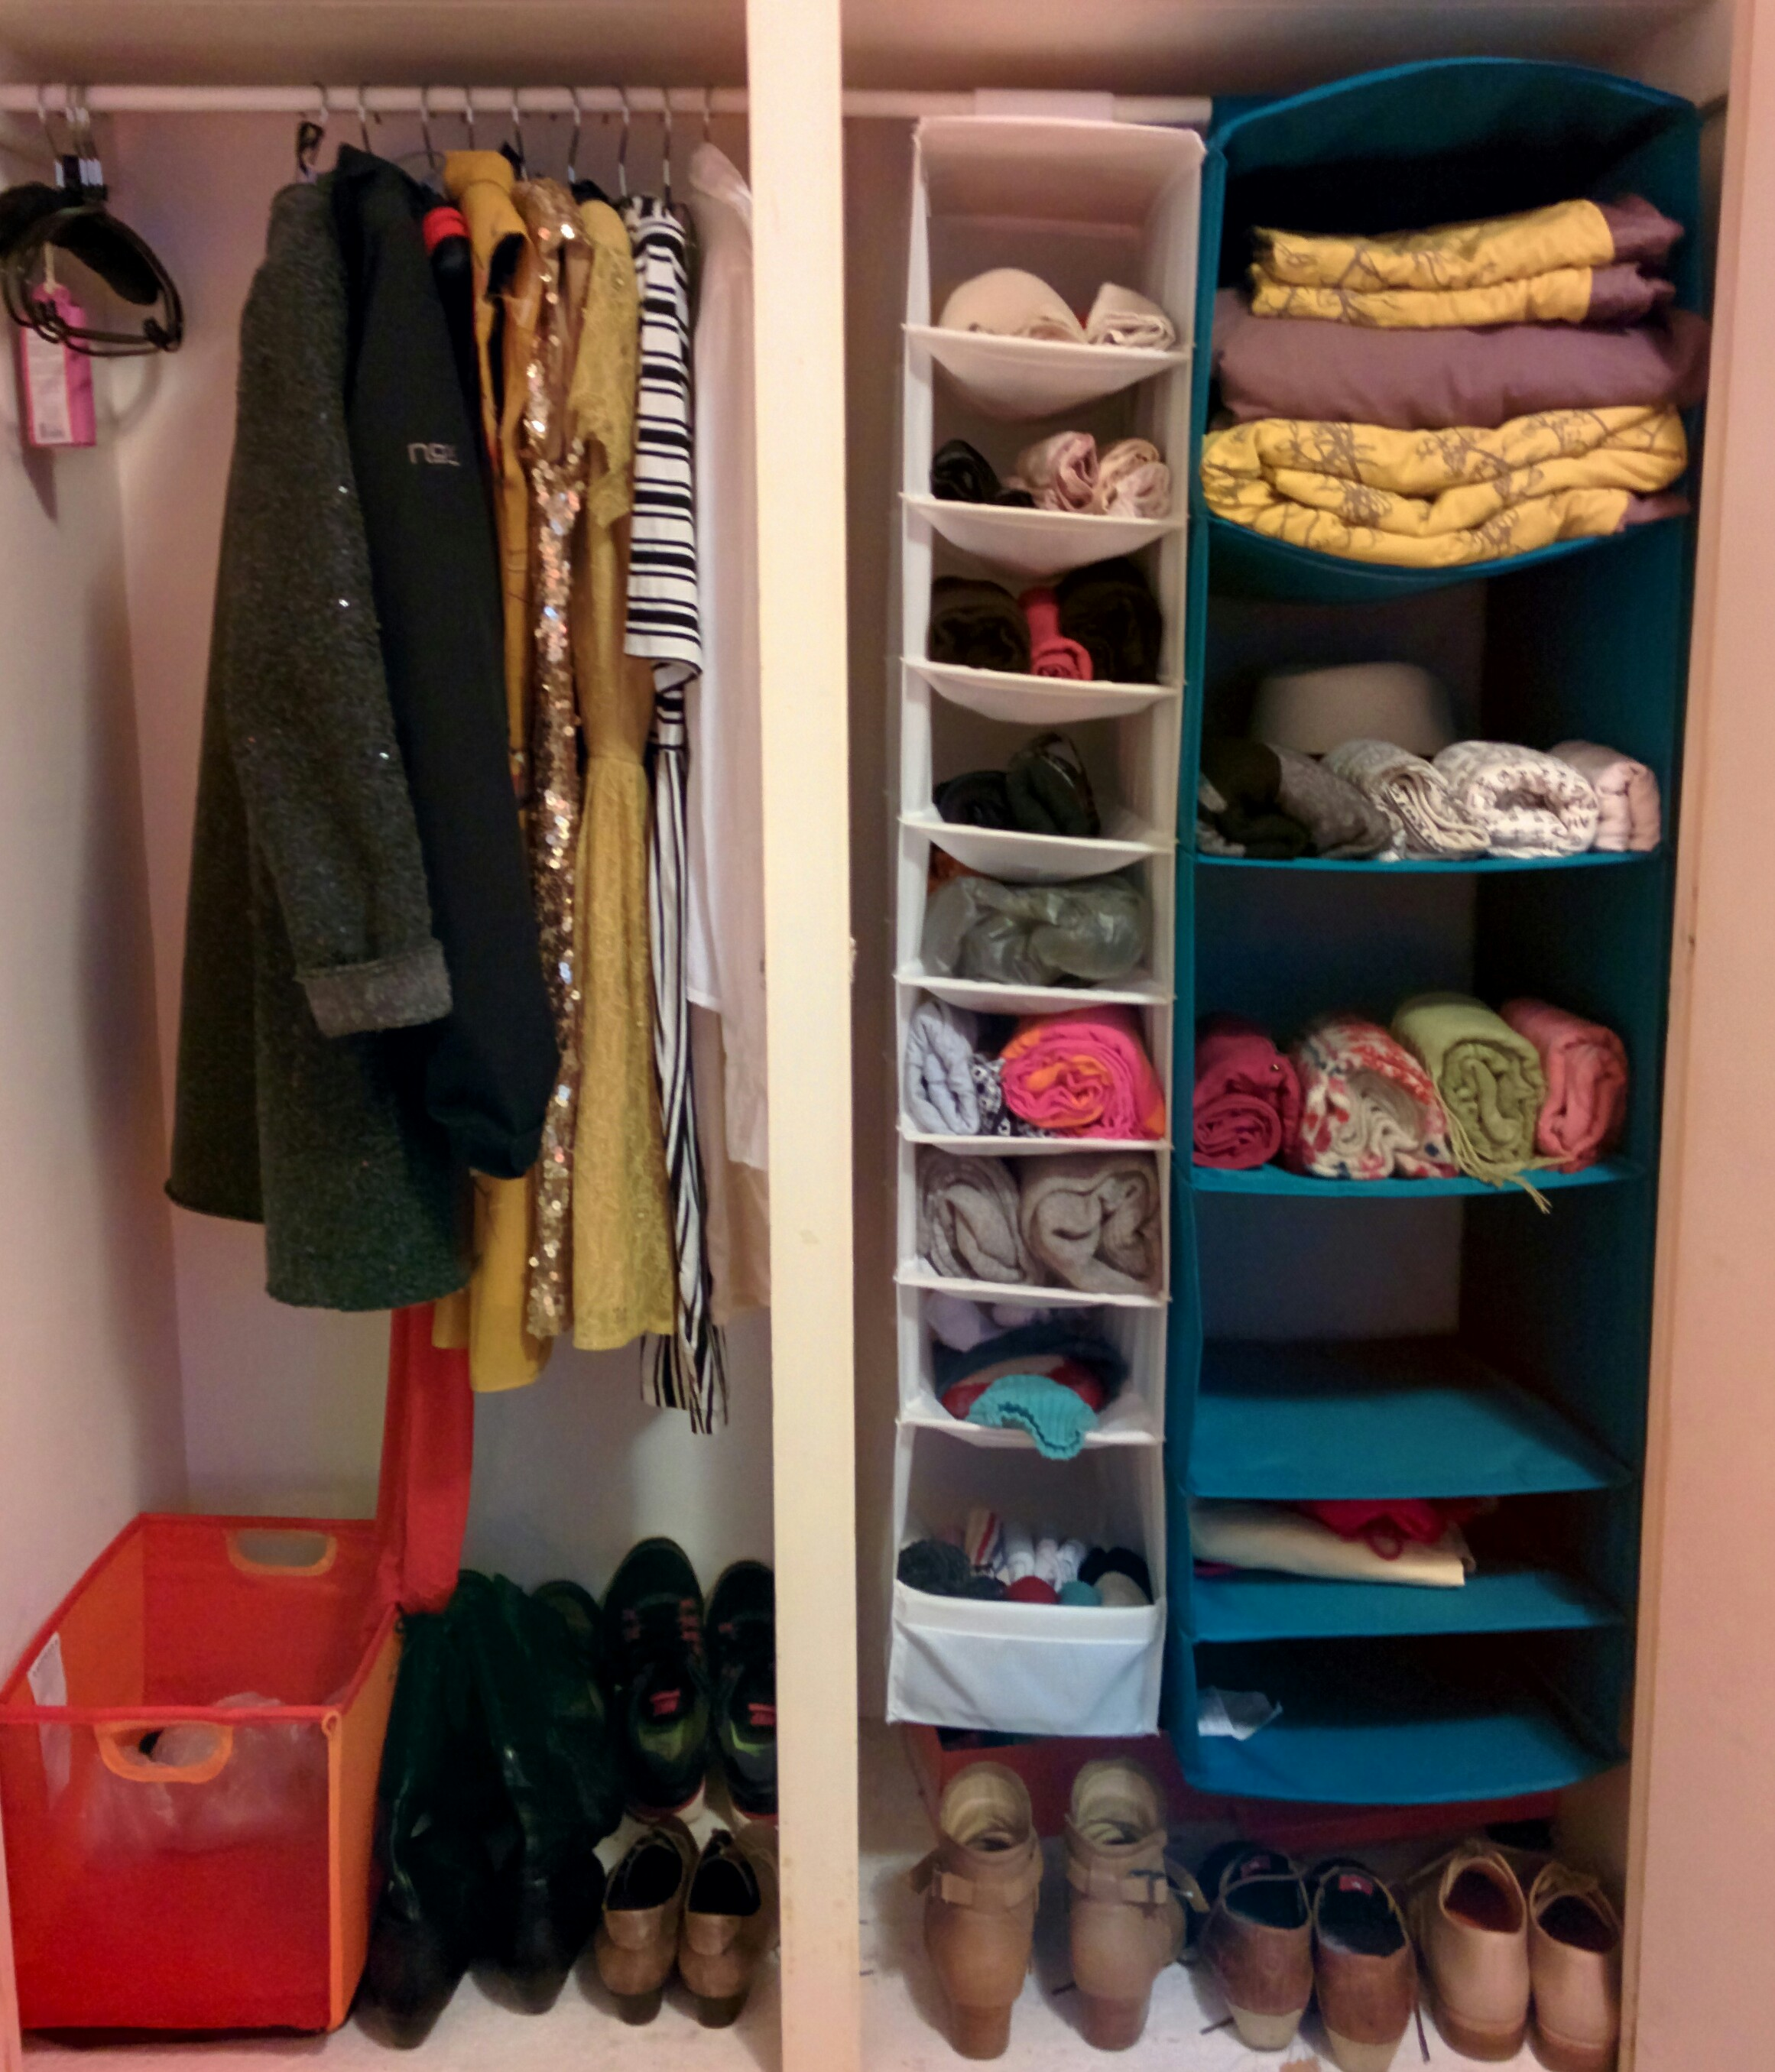 After the discarding and folding. I have to say this closet never looked this tidy!